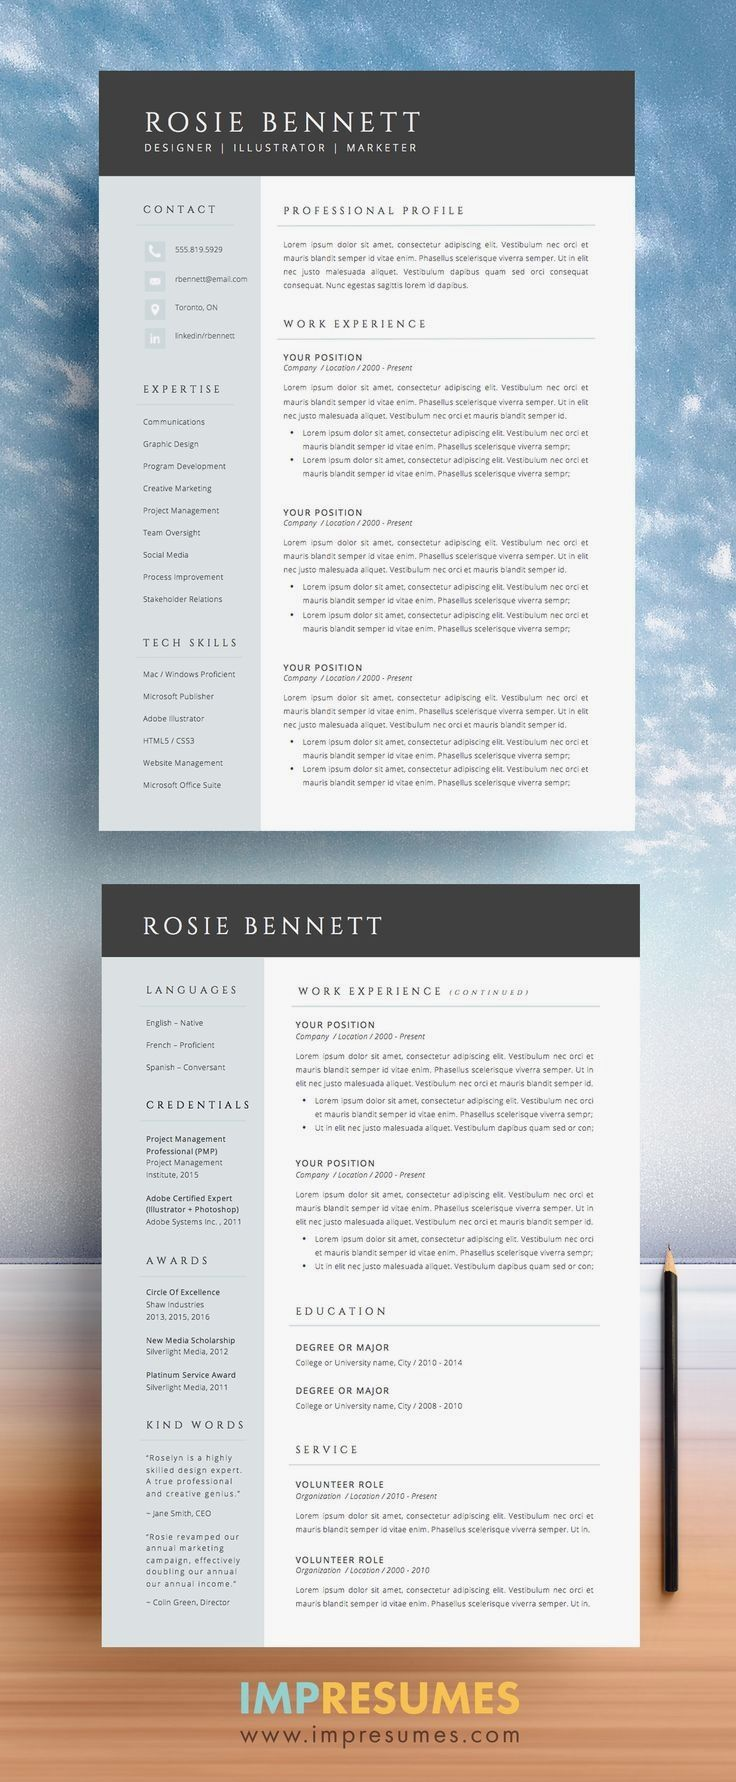 4Page Resume Template Package For Word  The 'Rosie' - Resume design professional, Resume design template, Resume template, Resume layout, Resume design, Cover letter for resume - Download this gorgeous, easily editable resume template package for Microsoft™ Word it's time to apply for that dream job!